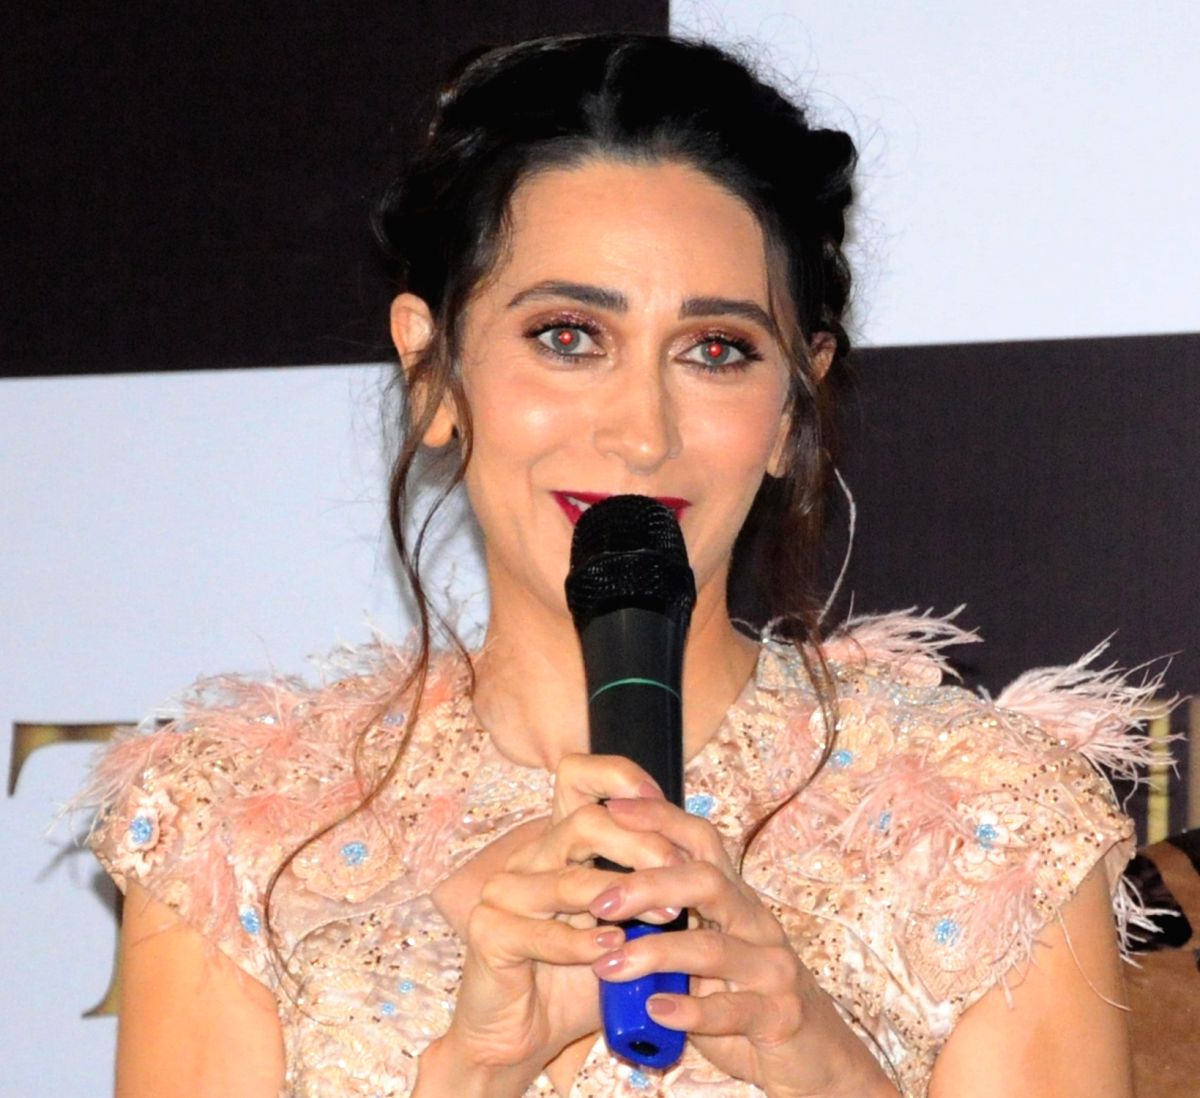 Amritsar: Actress Karisma Kapoor addresses at a fashion show in Amritsar on Nov 19, 2019.